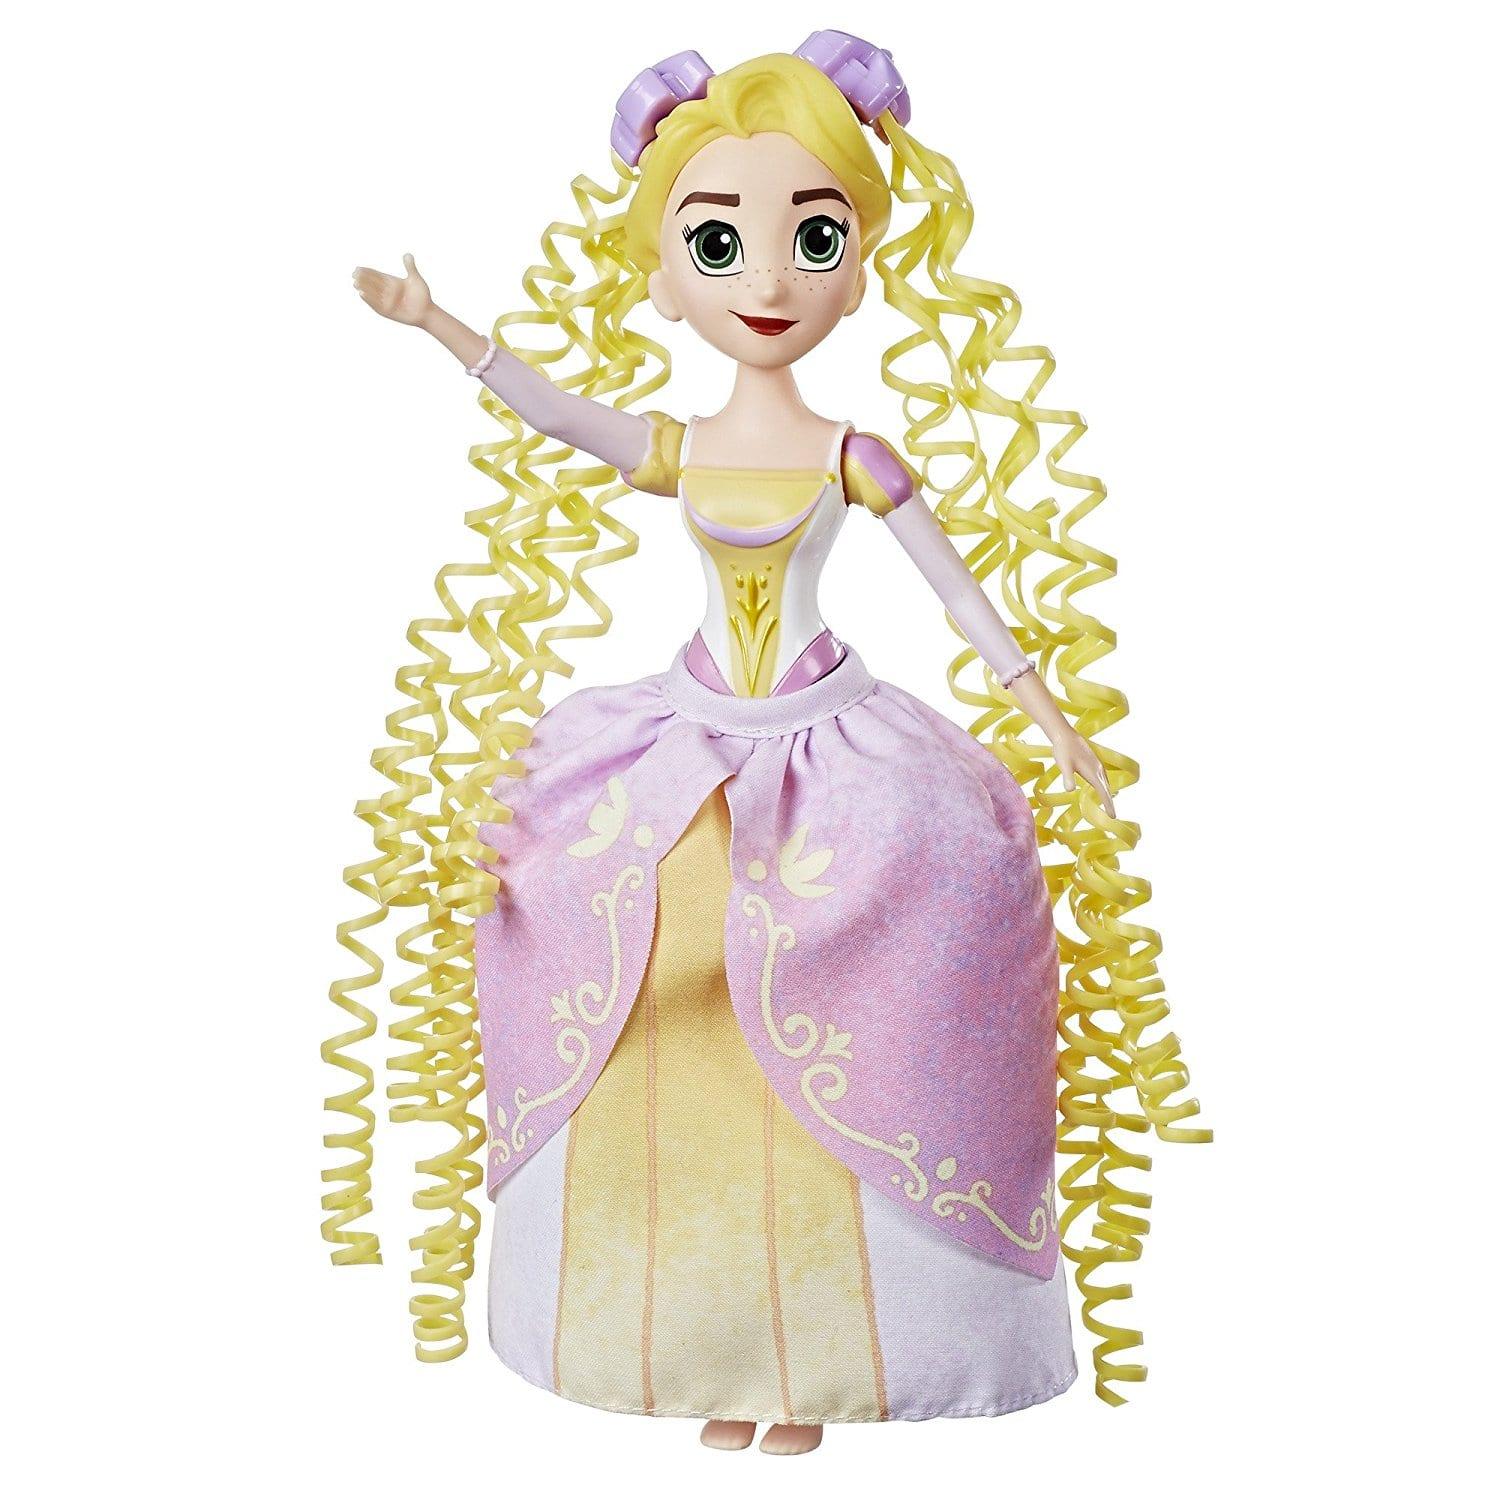 13-Piece Disney Tangled the Series Style Collection: Doll + Accessories $5.13 at Amazon *Add-on Item*